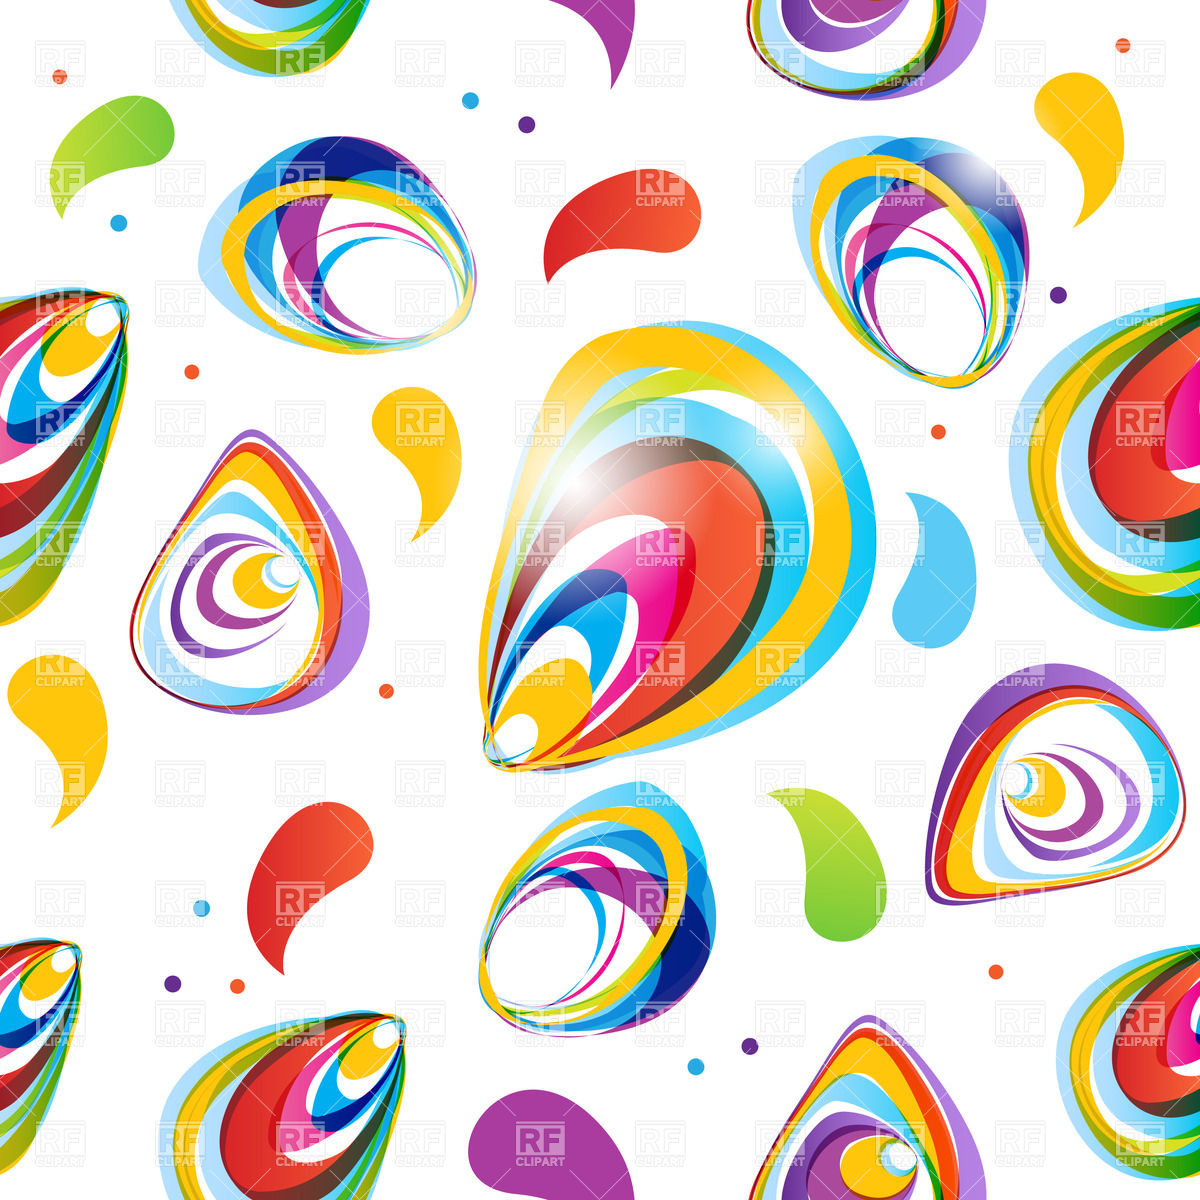 Abstract colorful seamless pattern Vector Image #22746.